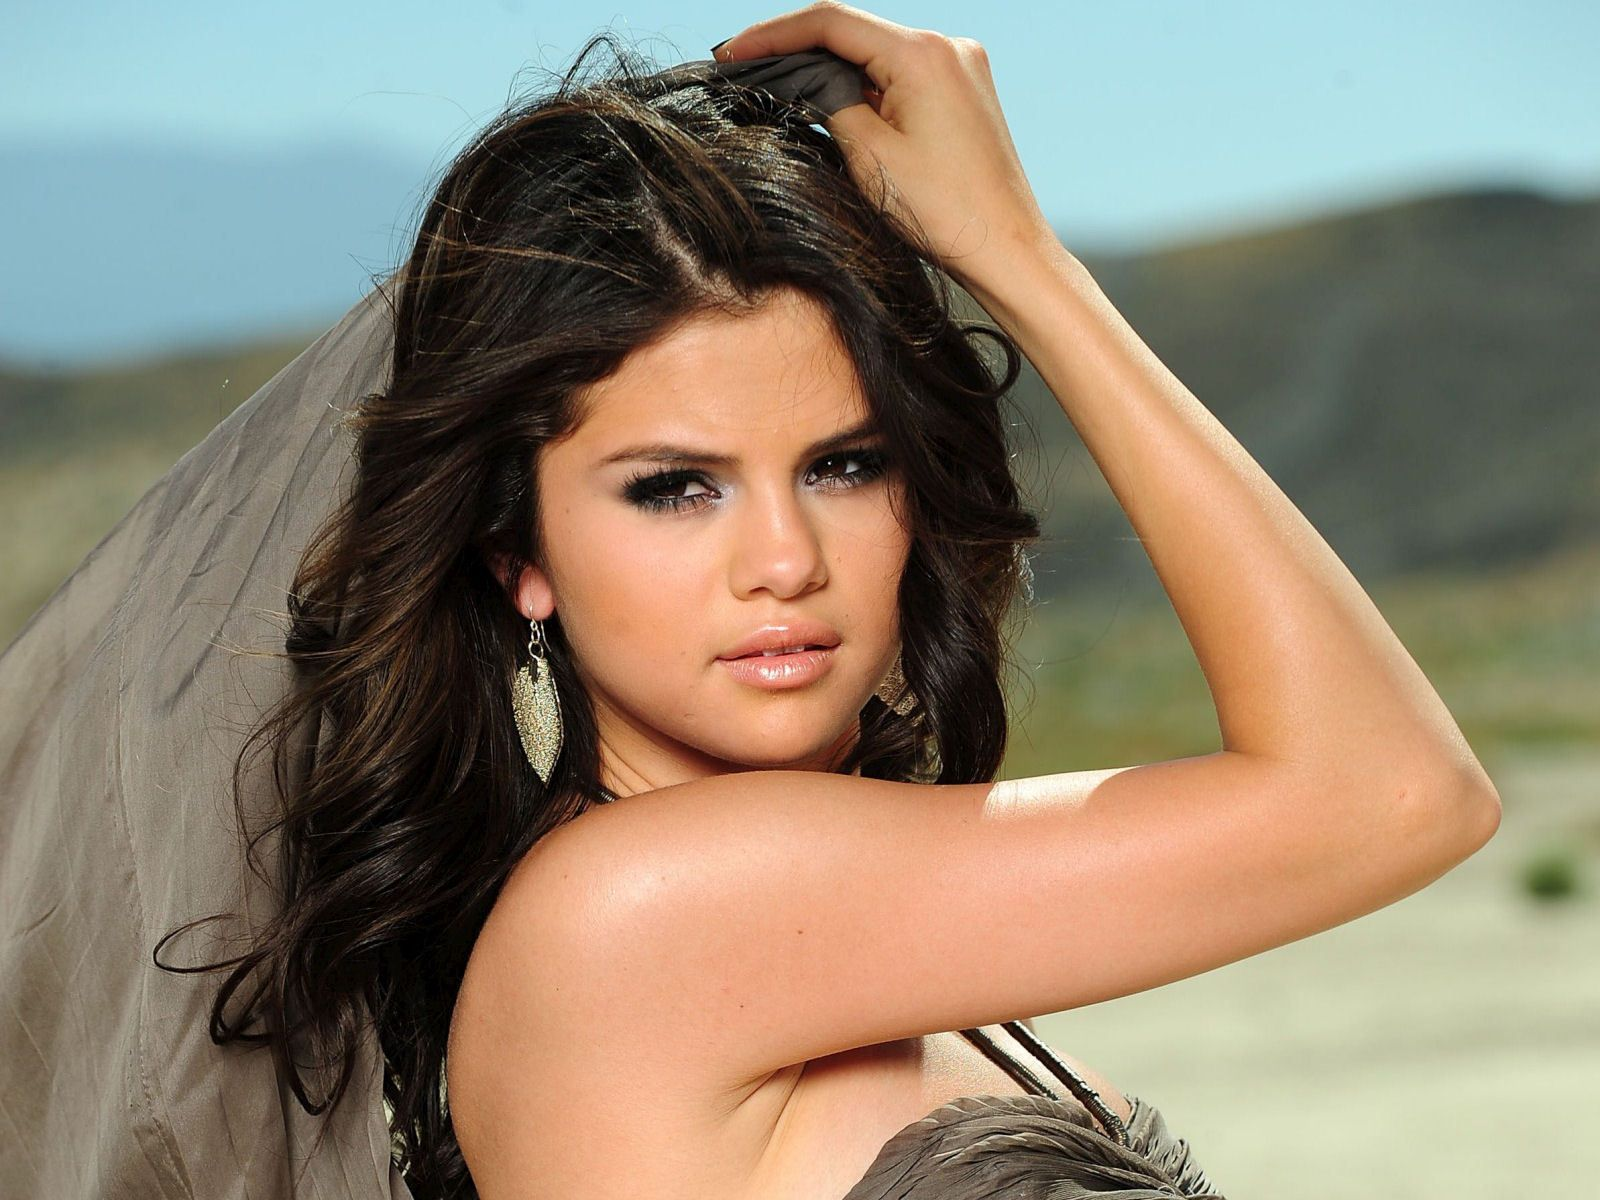 Selena gomez selena gomez lve selena gomez wallpaper explore selena gomez makeup selena gomez sexy and more voltagebd Image collections